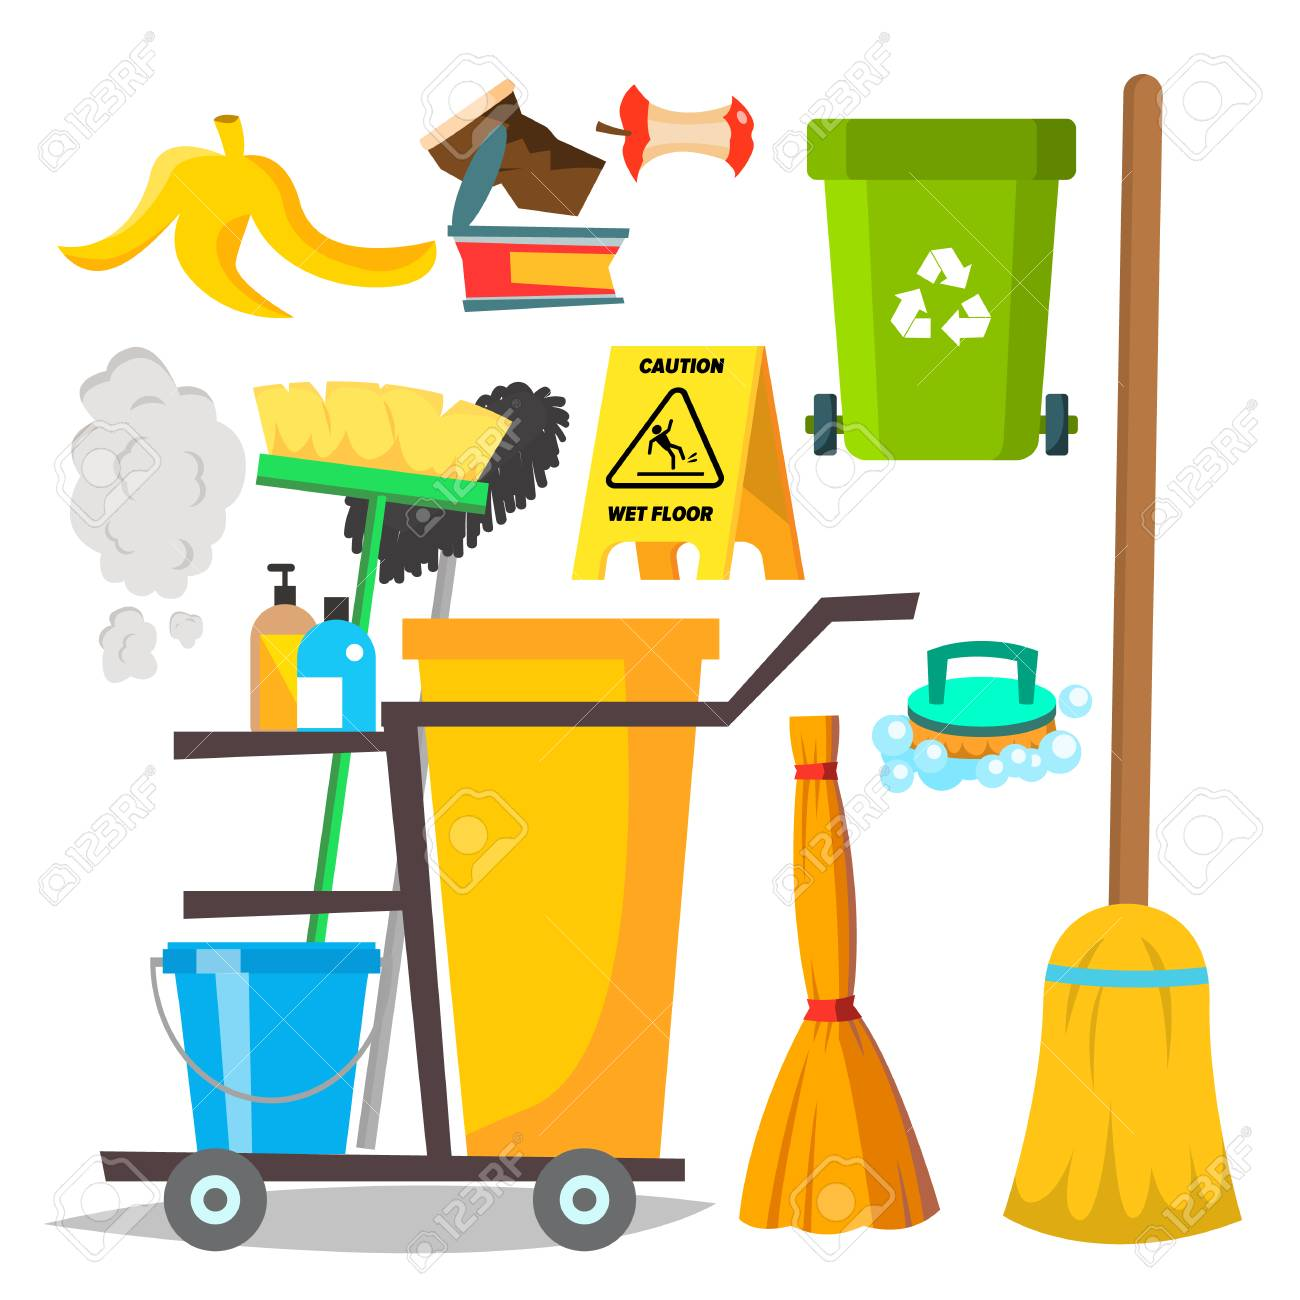 Cleaning Items Vector. Household Supplies Icons. Equipment. Isolated Flat Cartoon Illustration - 126553461